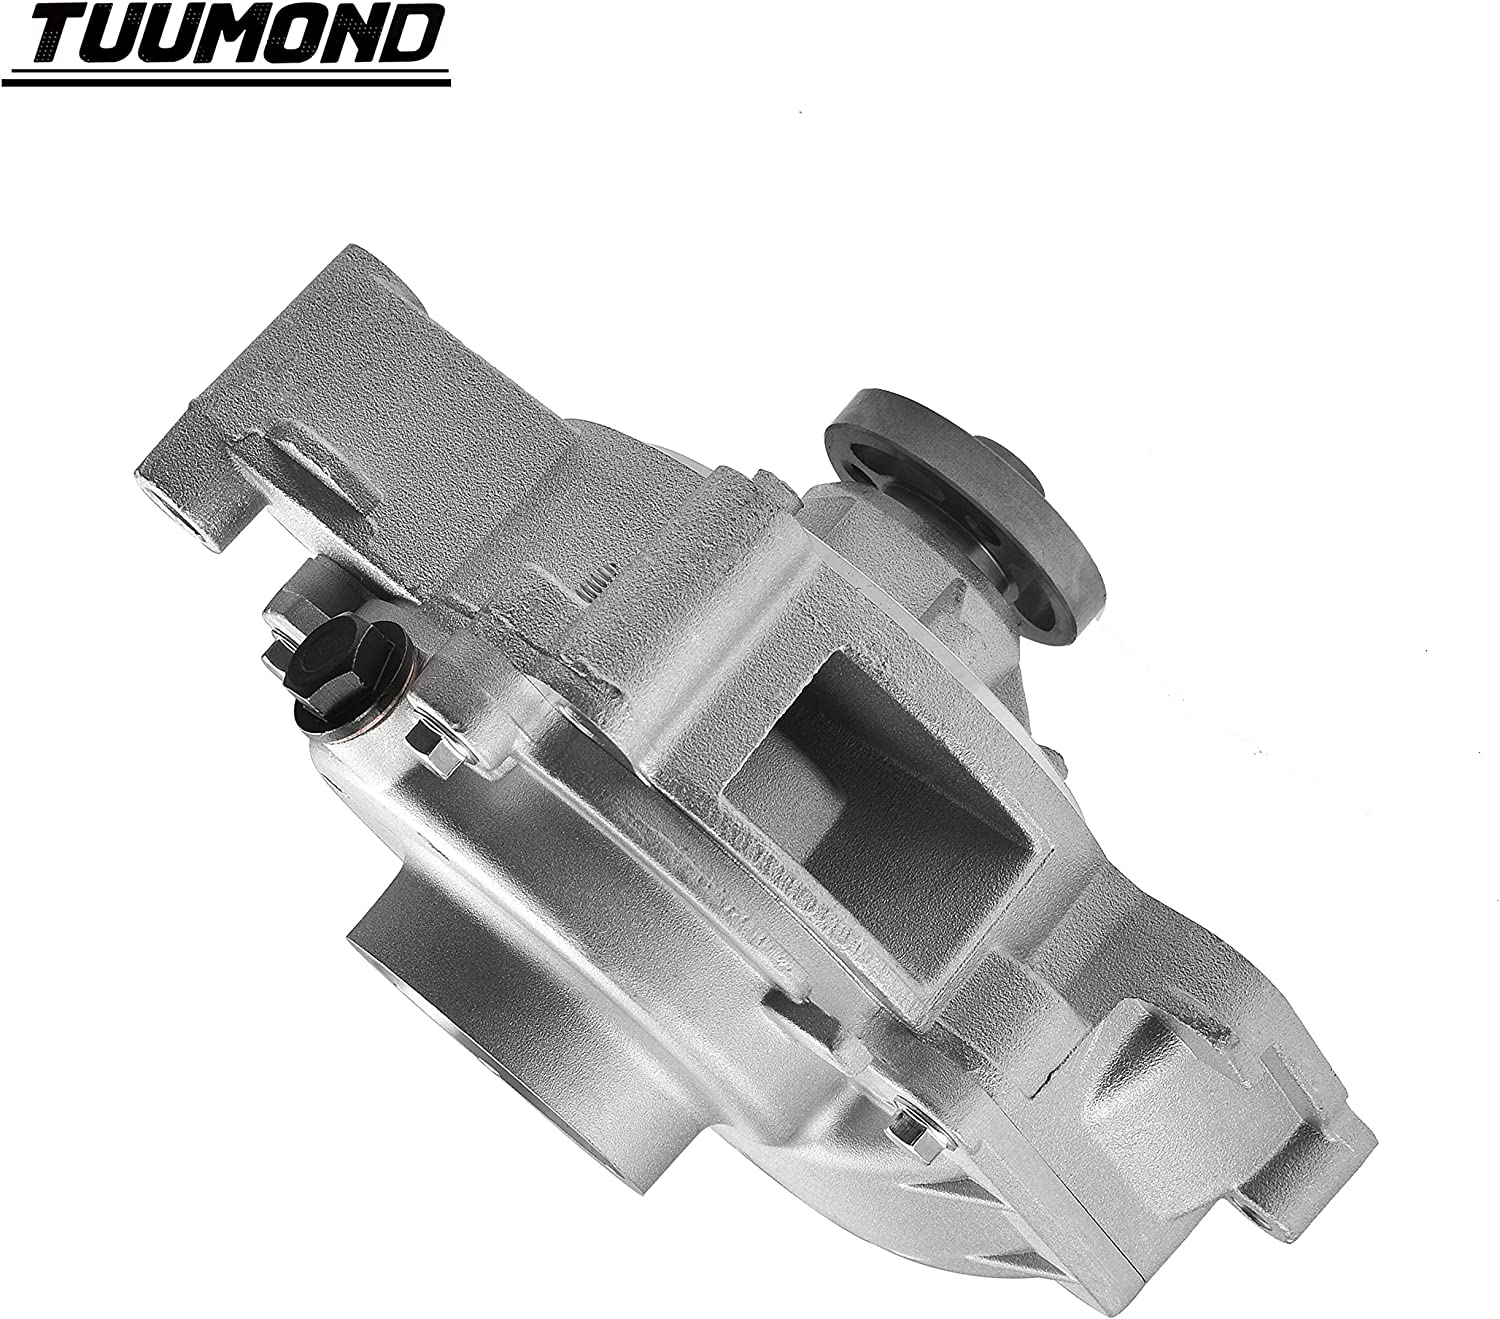 TUUMOND Water Pump with Gasket fits for Buick Chevy Saab Saturn Pontiac Olds Allure Cobalt 2.0L 2.2L 2.4L AW5092